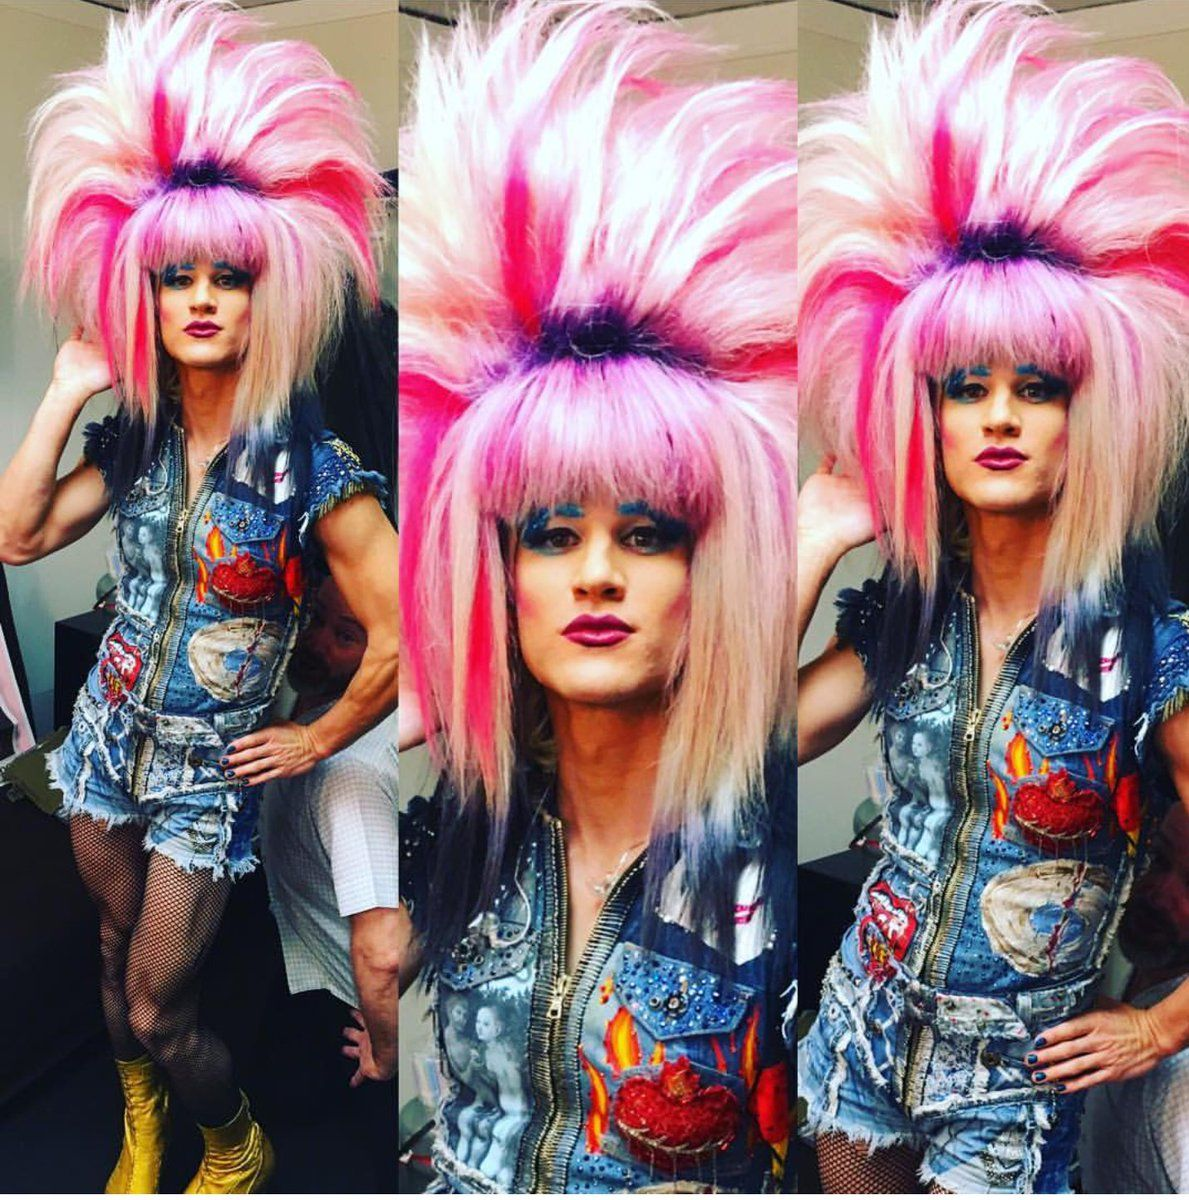 Darren criss hedwig and the angry inch all things glee the cast darren criss hedwig and the angry inch biocorpaavc